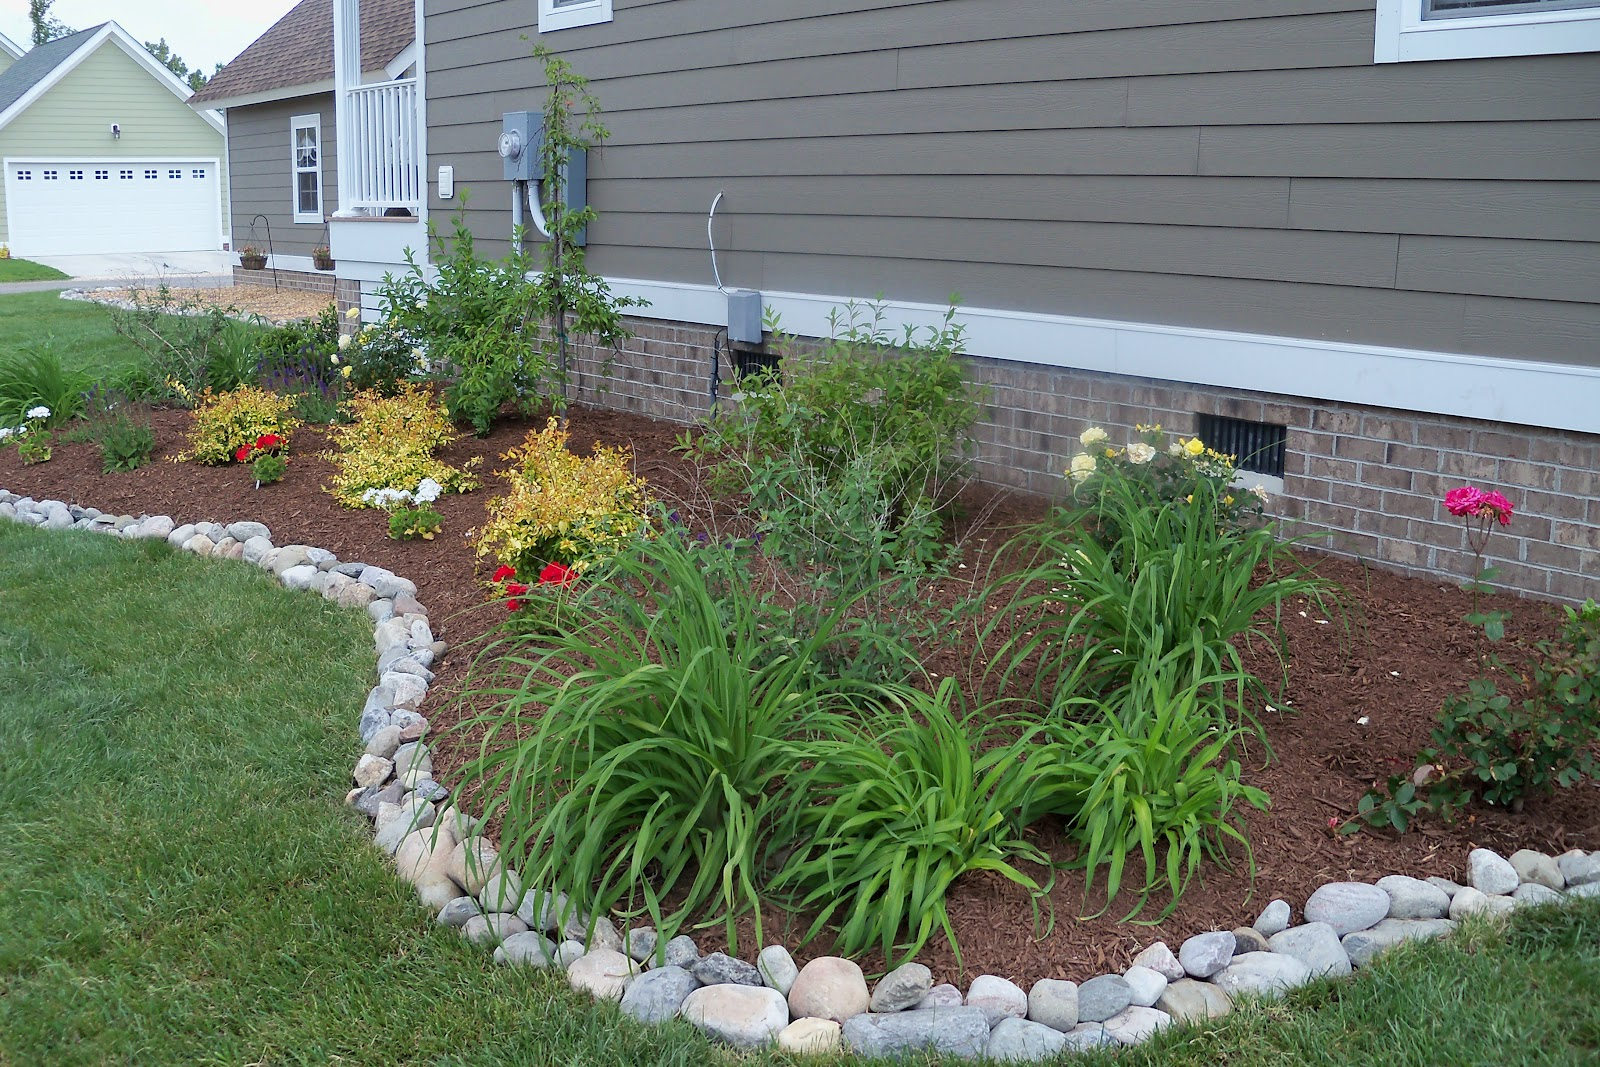 Yard Edging | Wood Landscape Edging | Landscape Edging Ideas